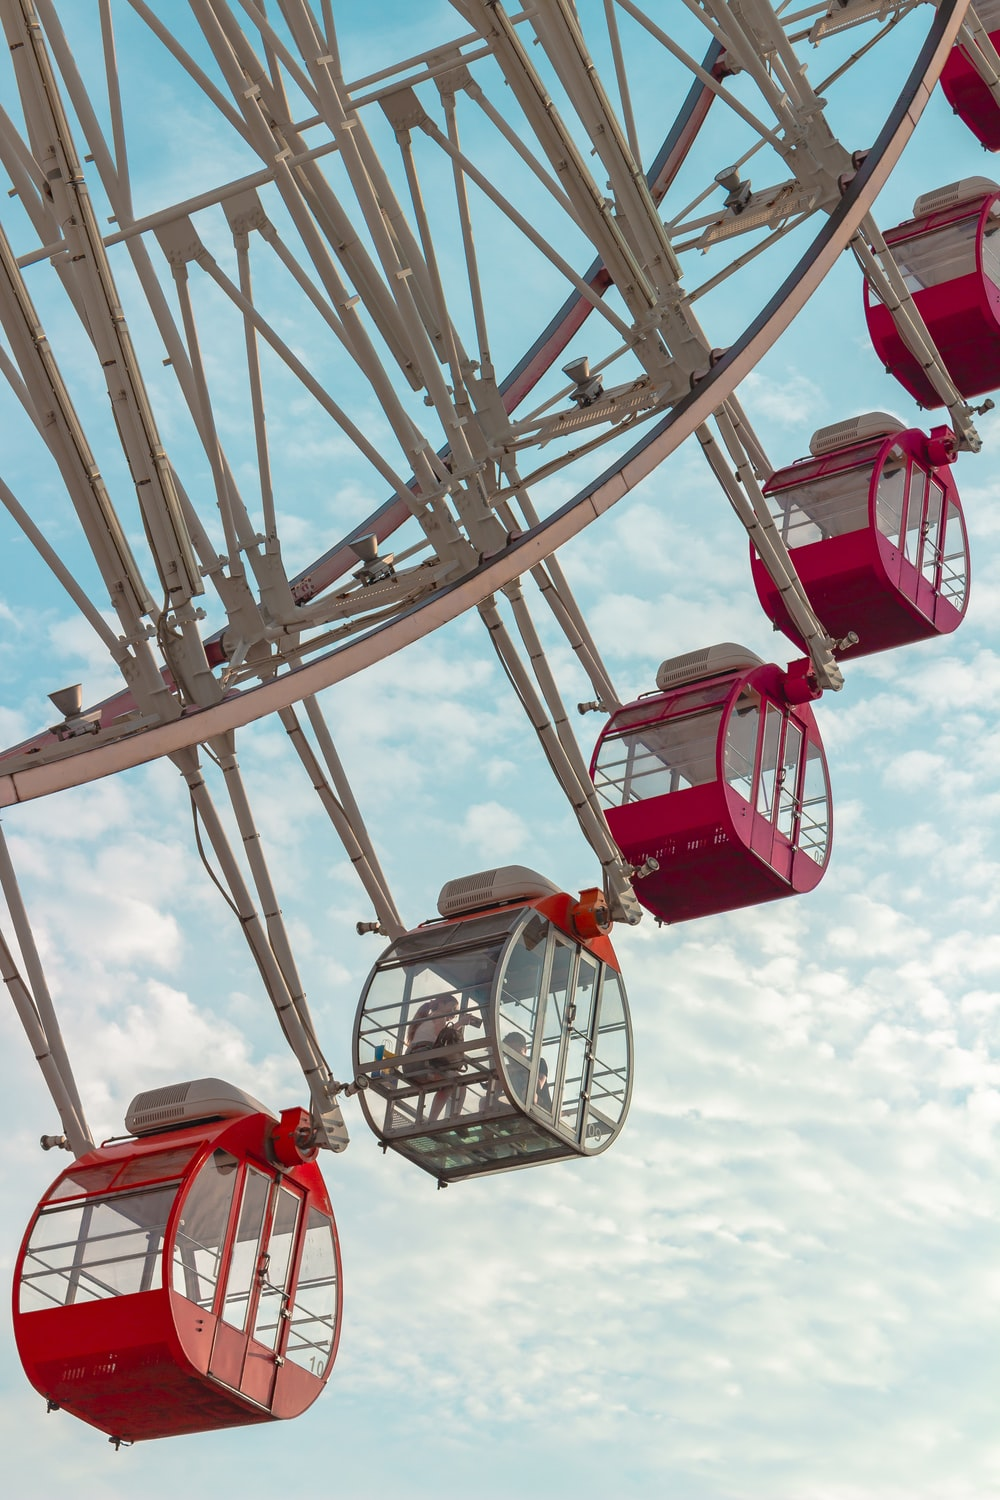 white and red ferris wheel at daytime close-up photography